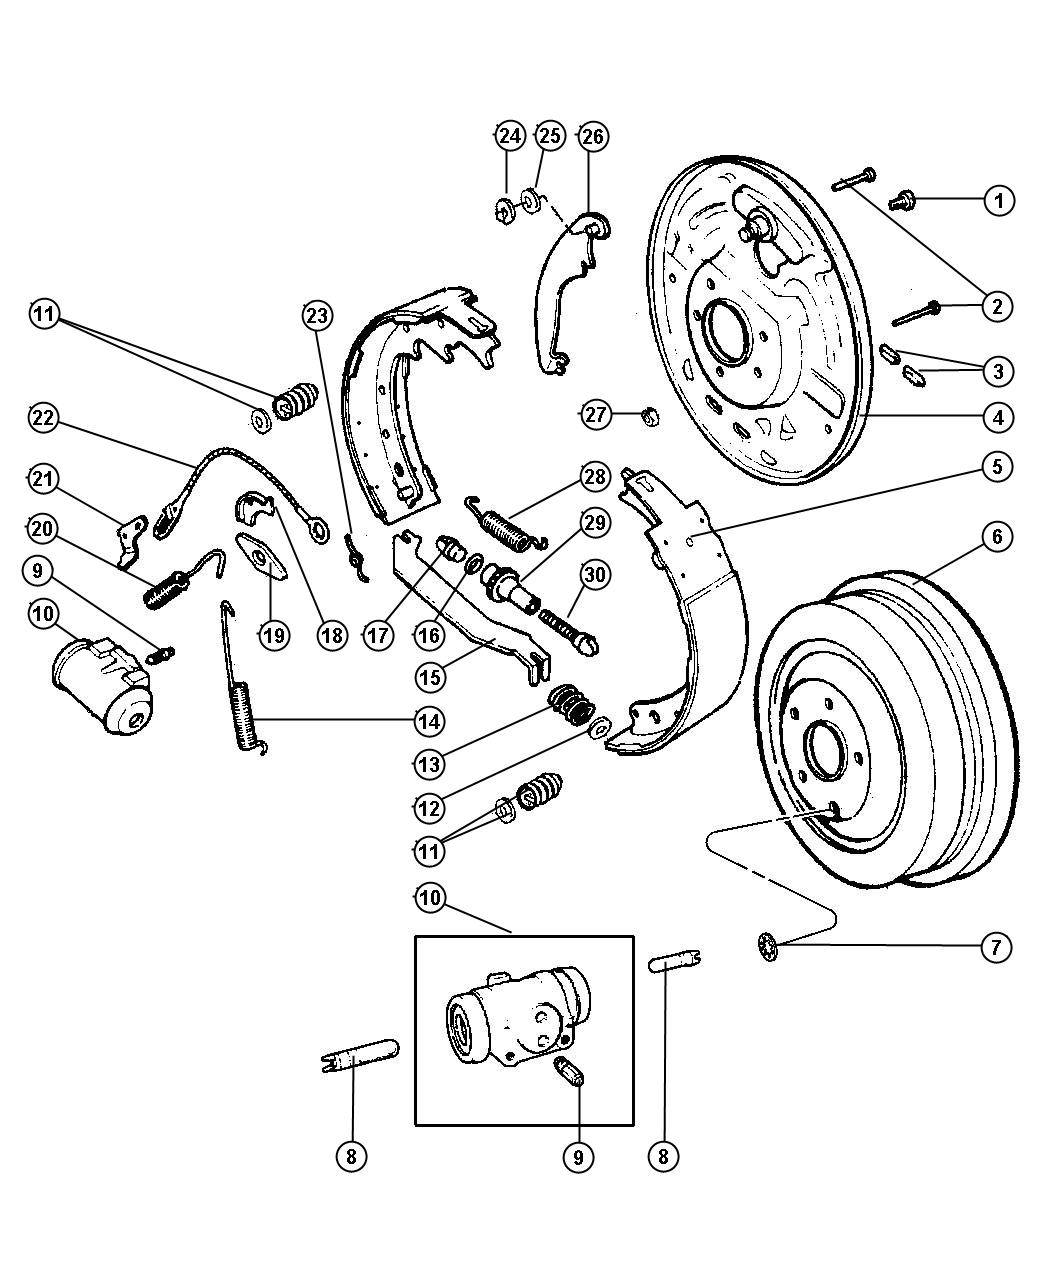 Service manual [2002 Jeep Liberty Brake Replacement System